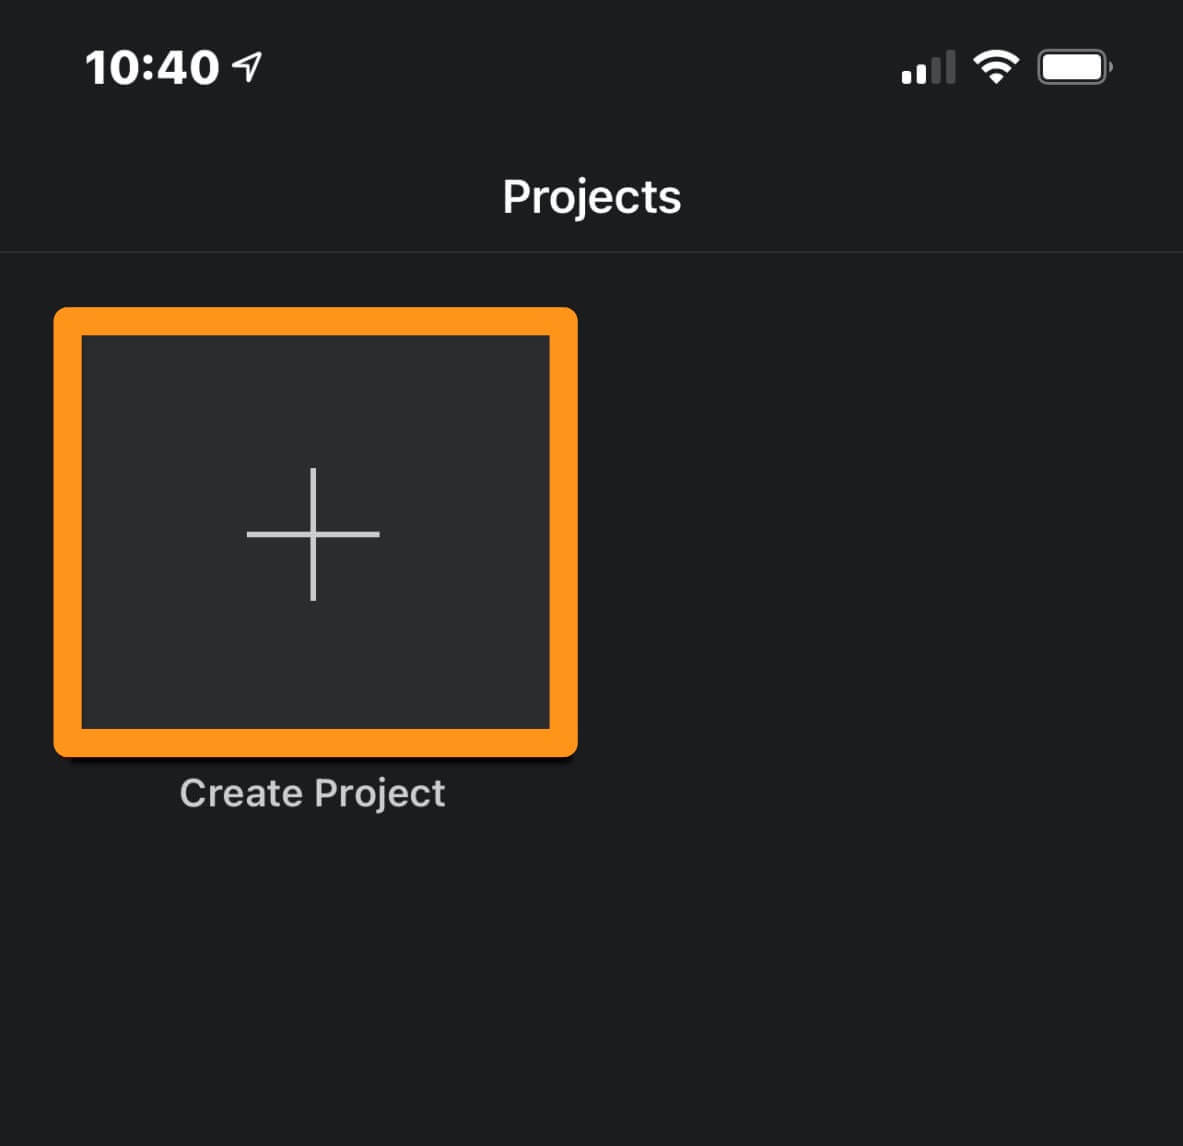 tap create project button